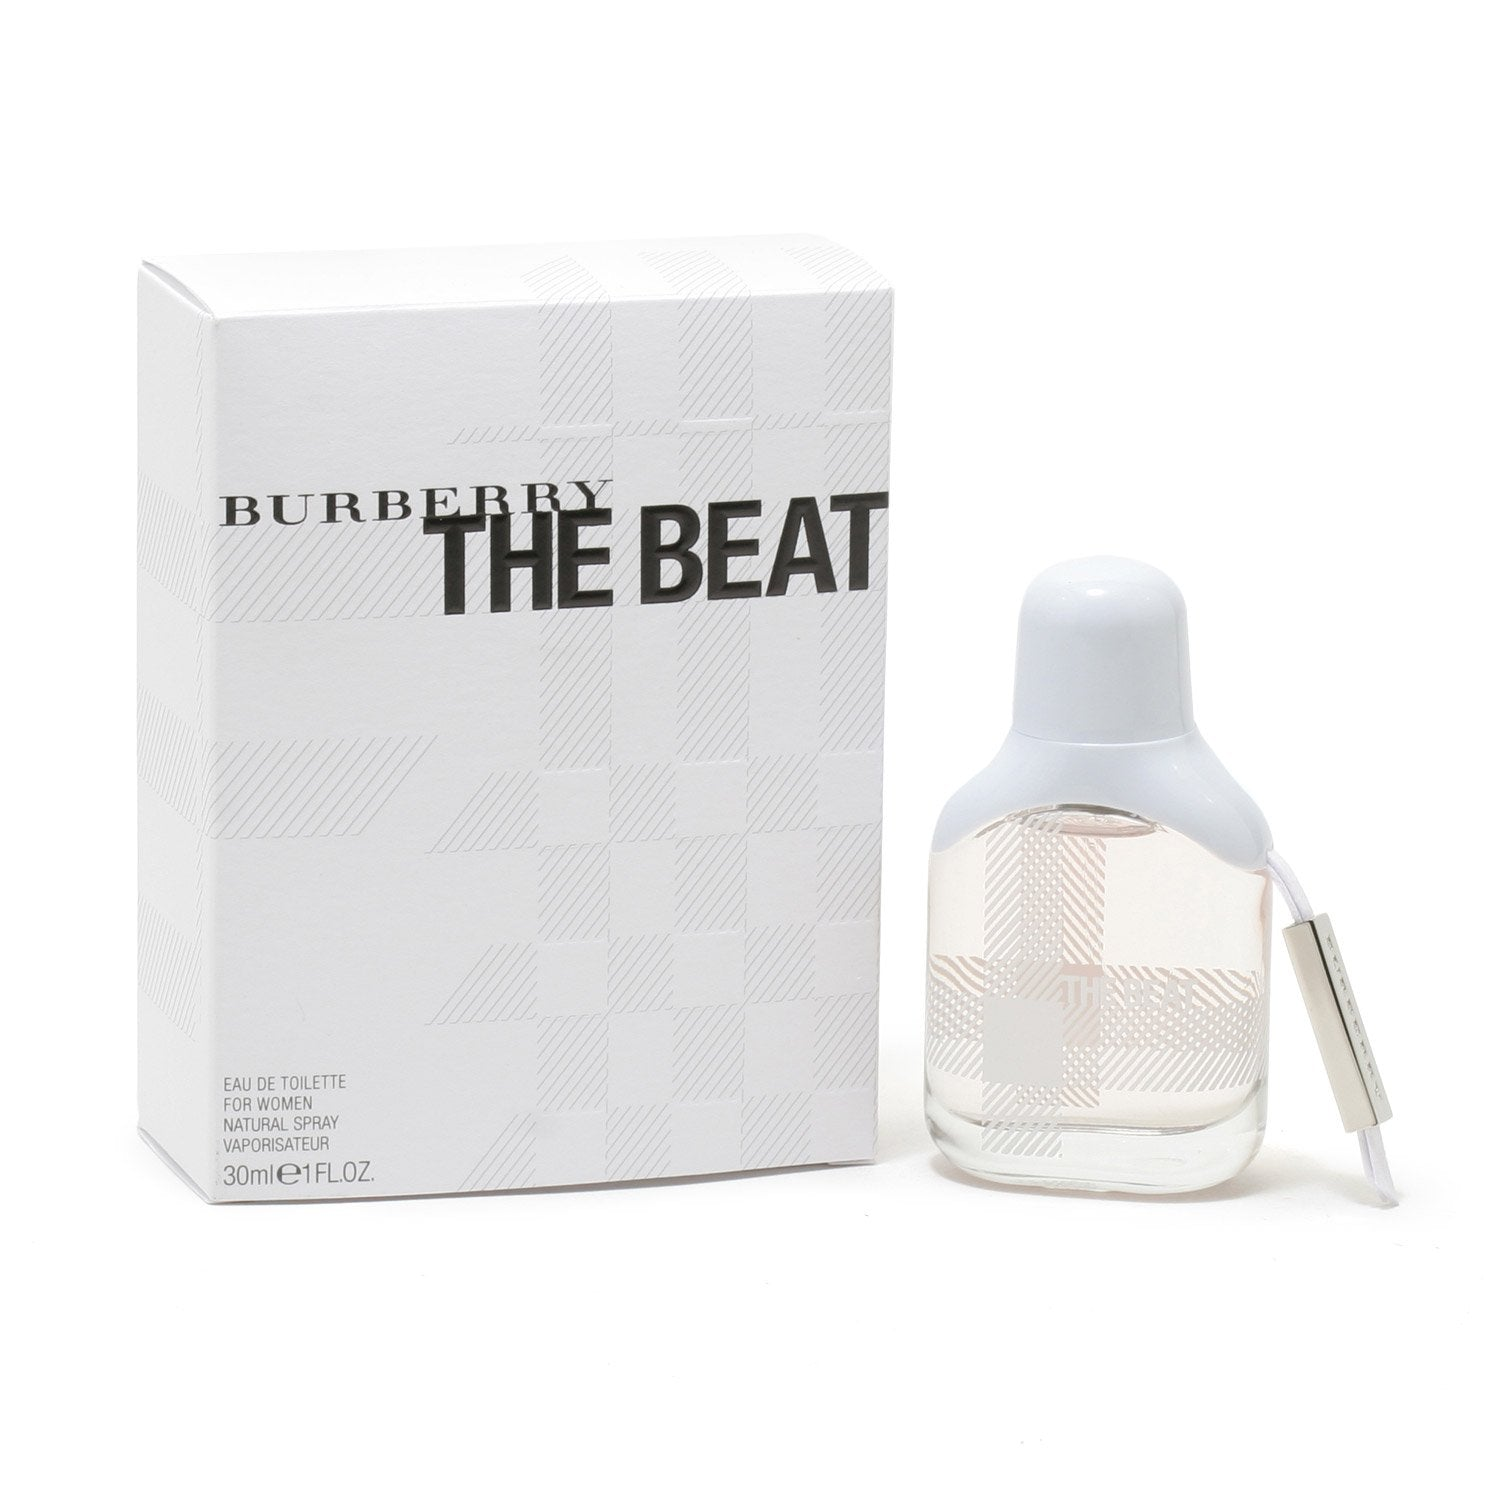 Perfume - BURBERRY THE BEAT FOR WOMEN - EAU DE TOILETTE SPRAY